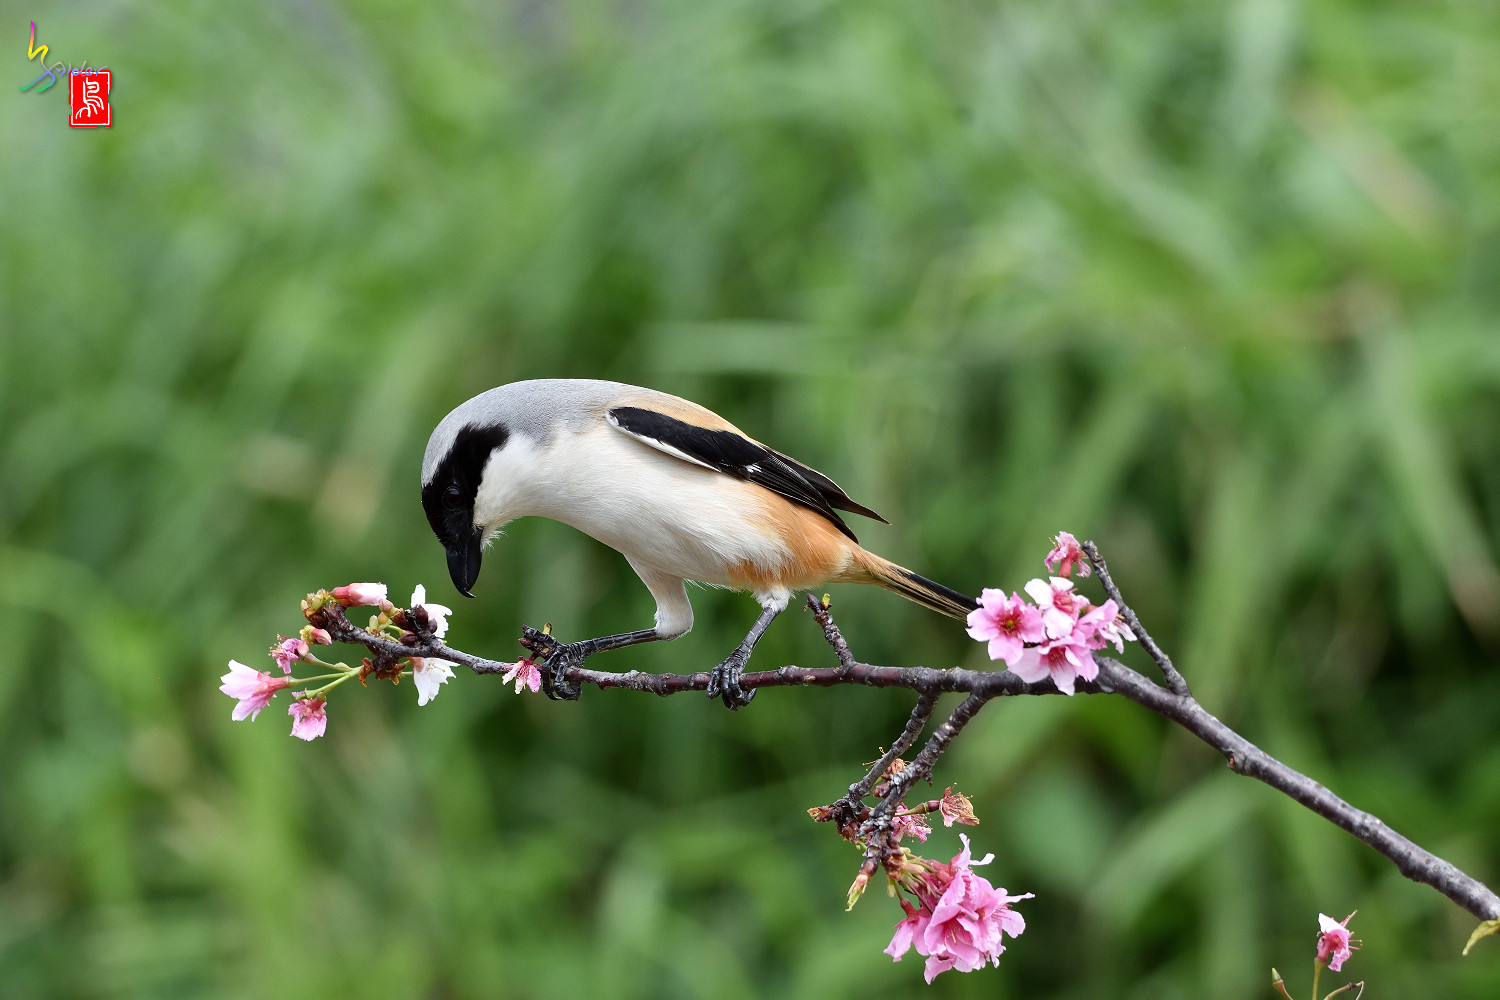 Long-tailed_Shrike_5601